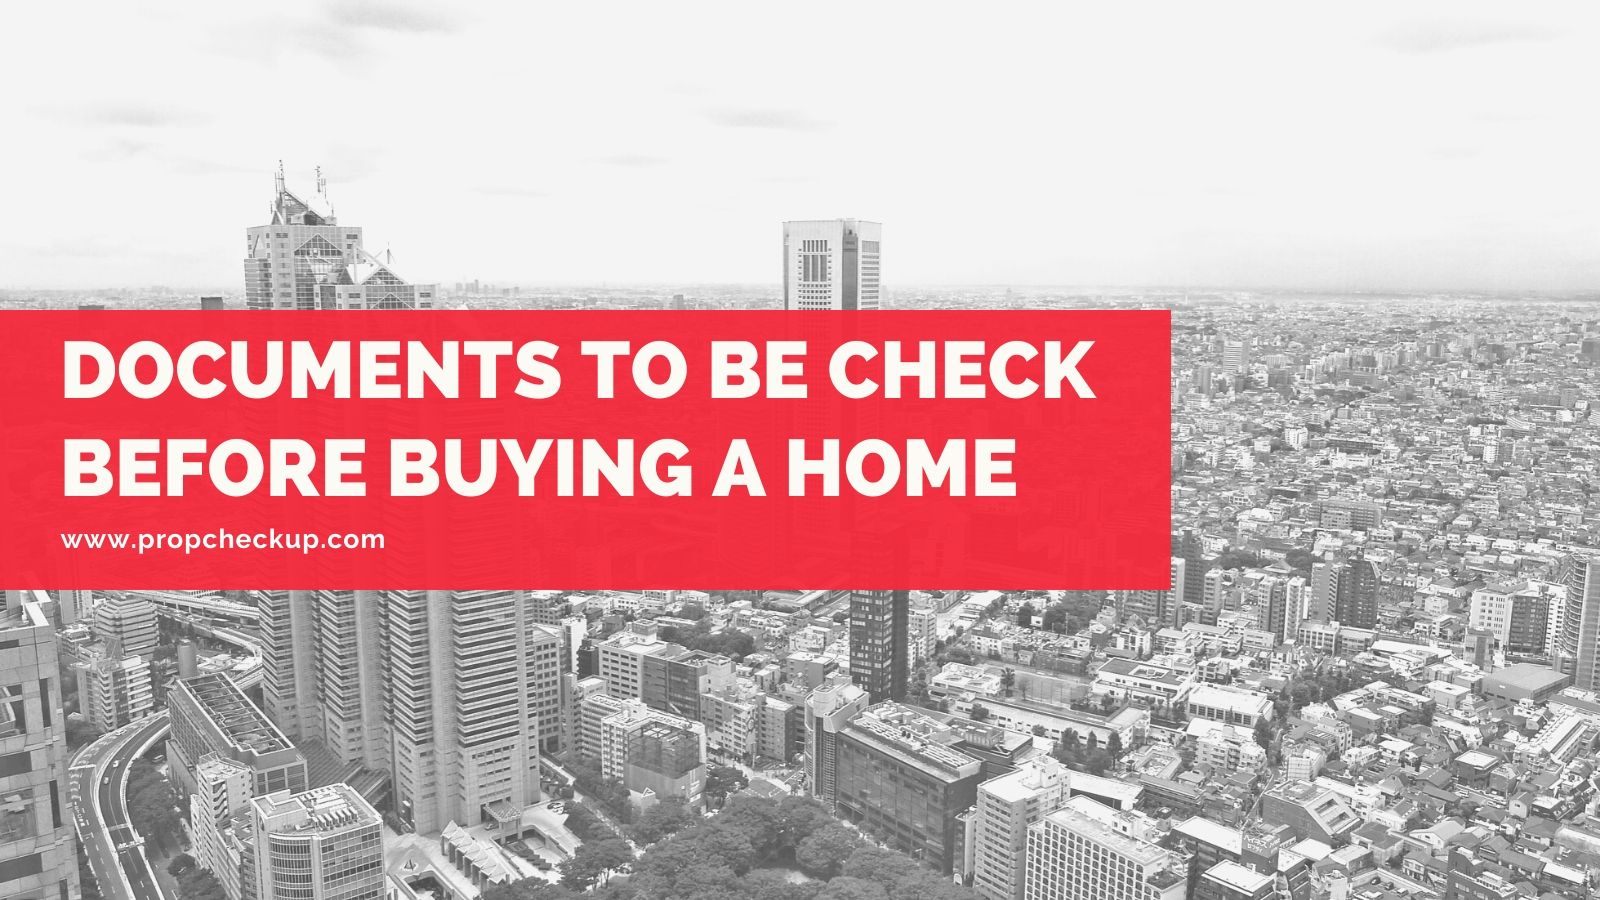 Documents to be check Before Buying a Home